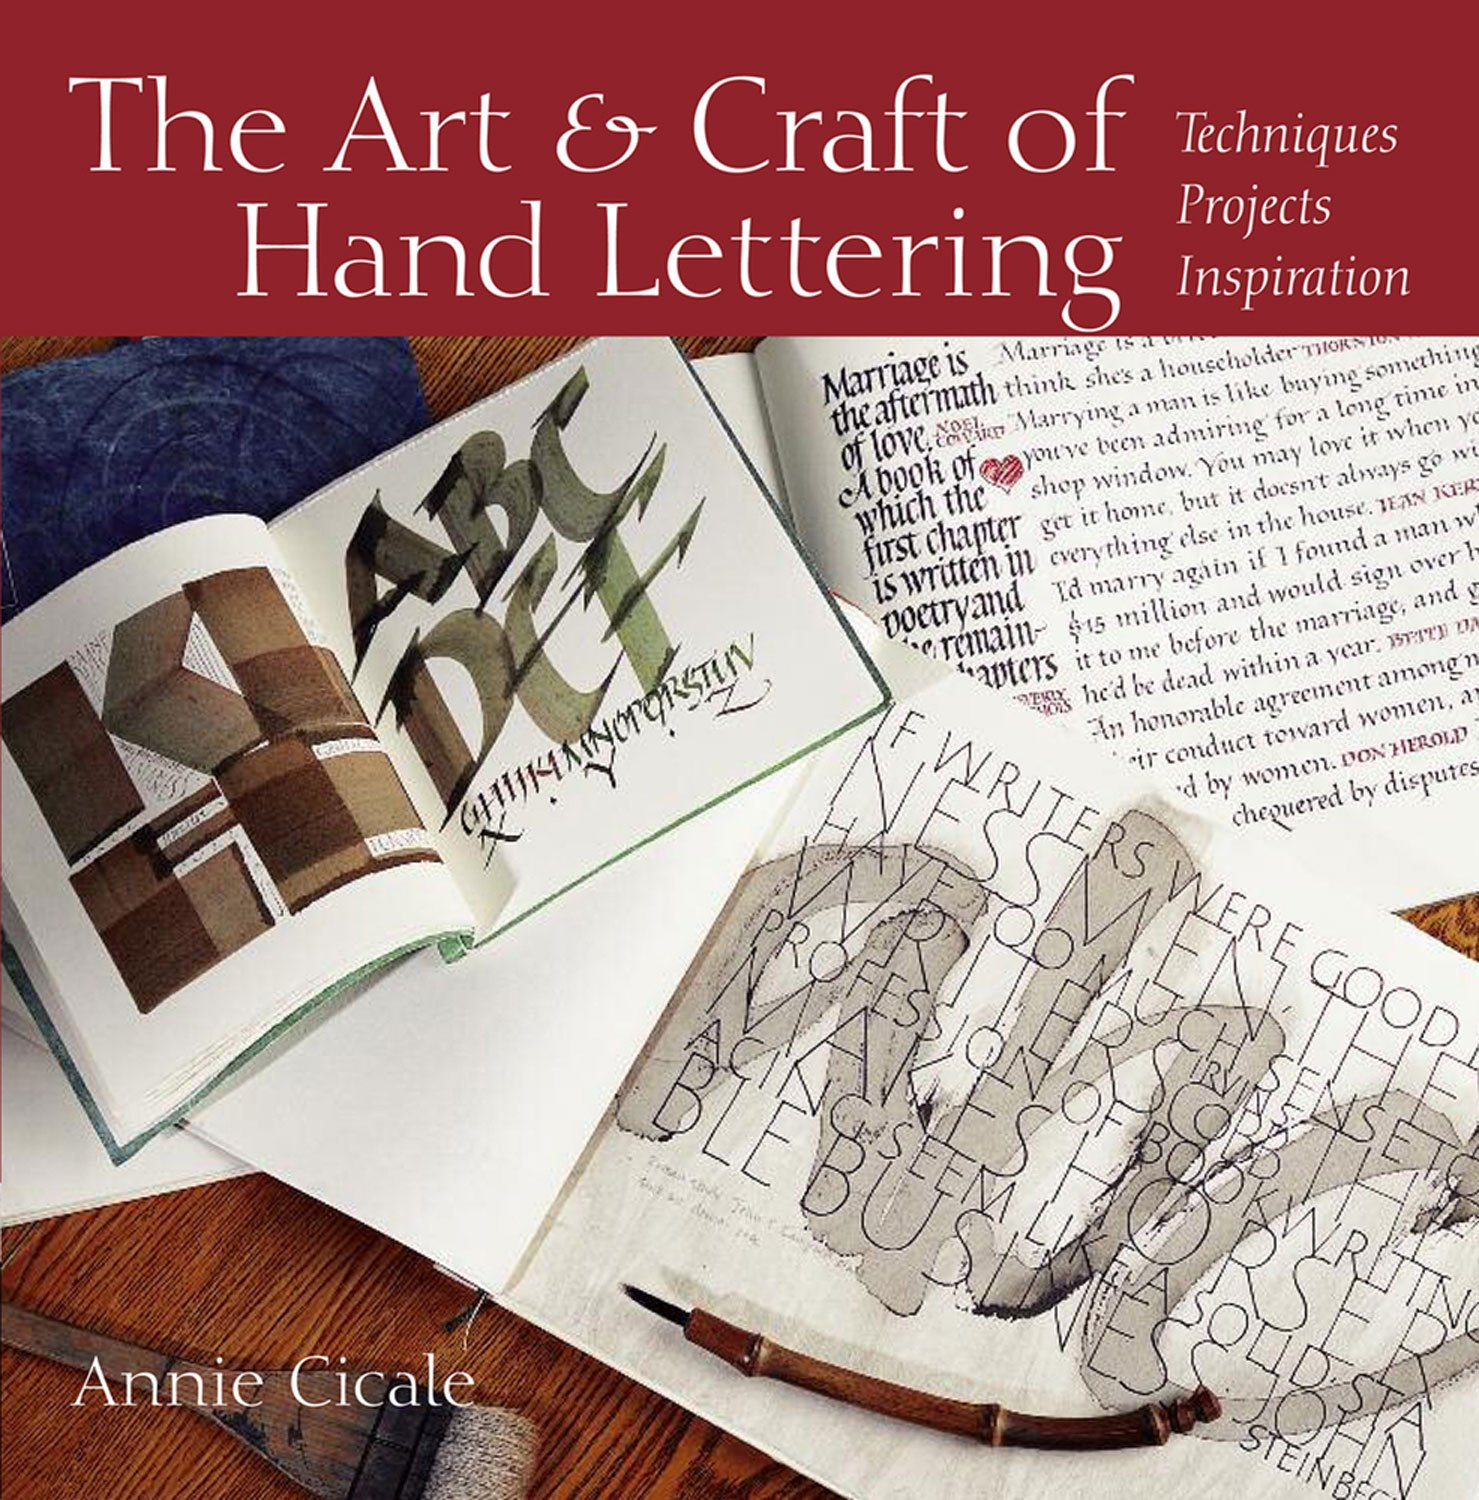 The Art And Craft Of Hand Lettering Techniques Projects Inspiration Annie Cicale 9780615466965 Amazon Books